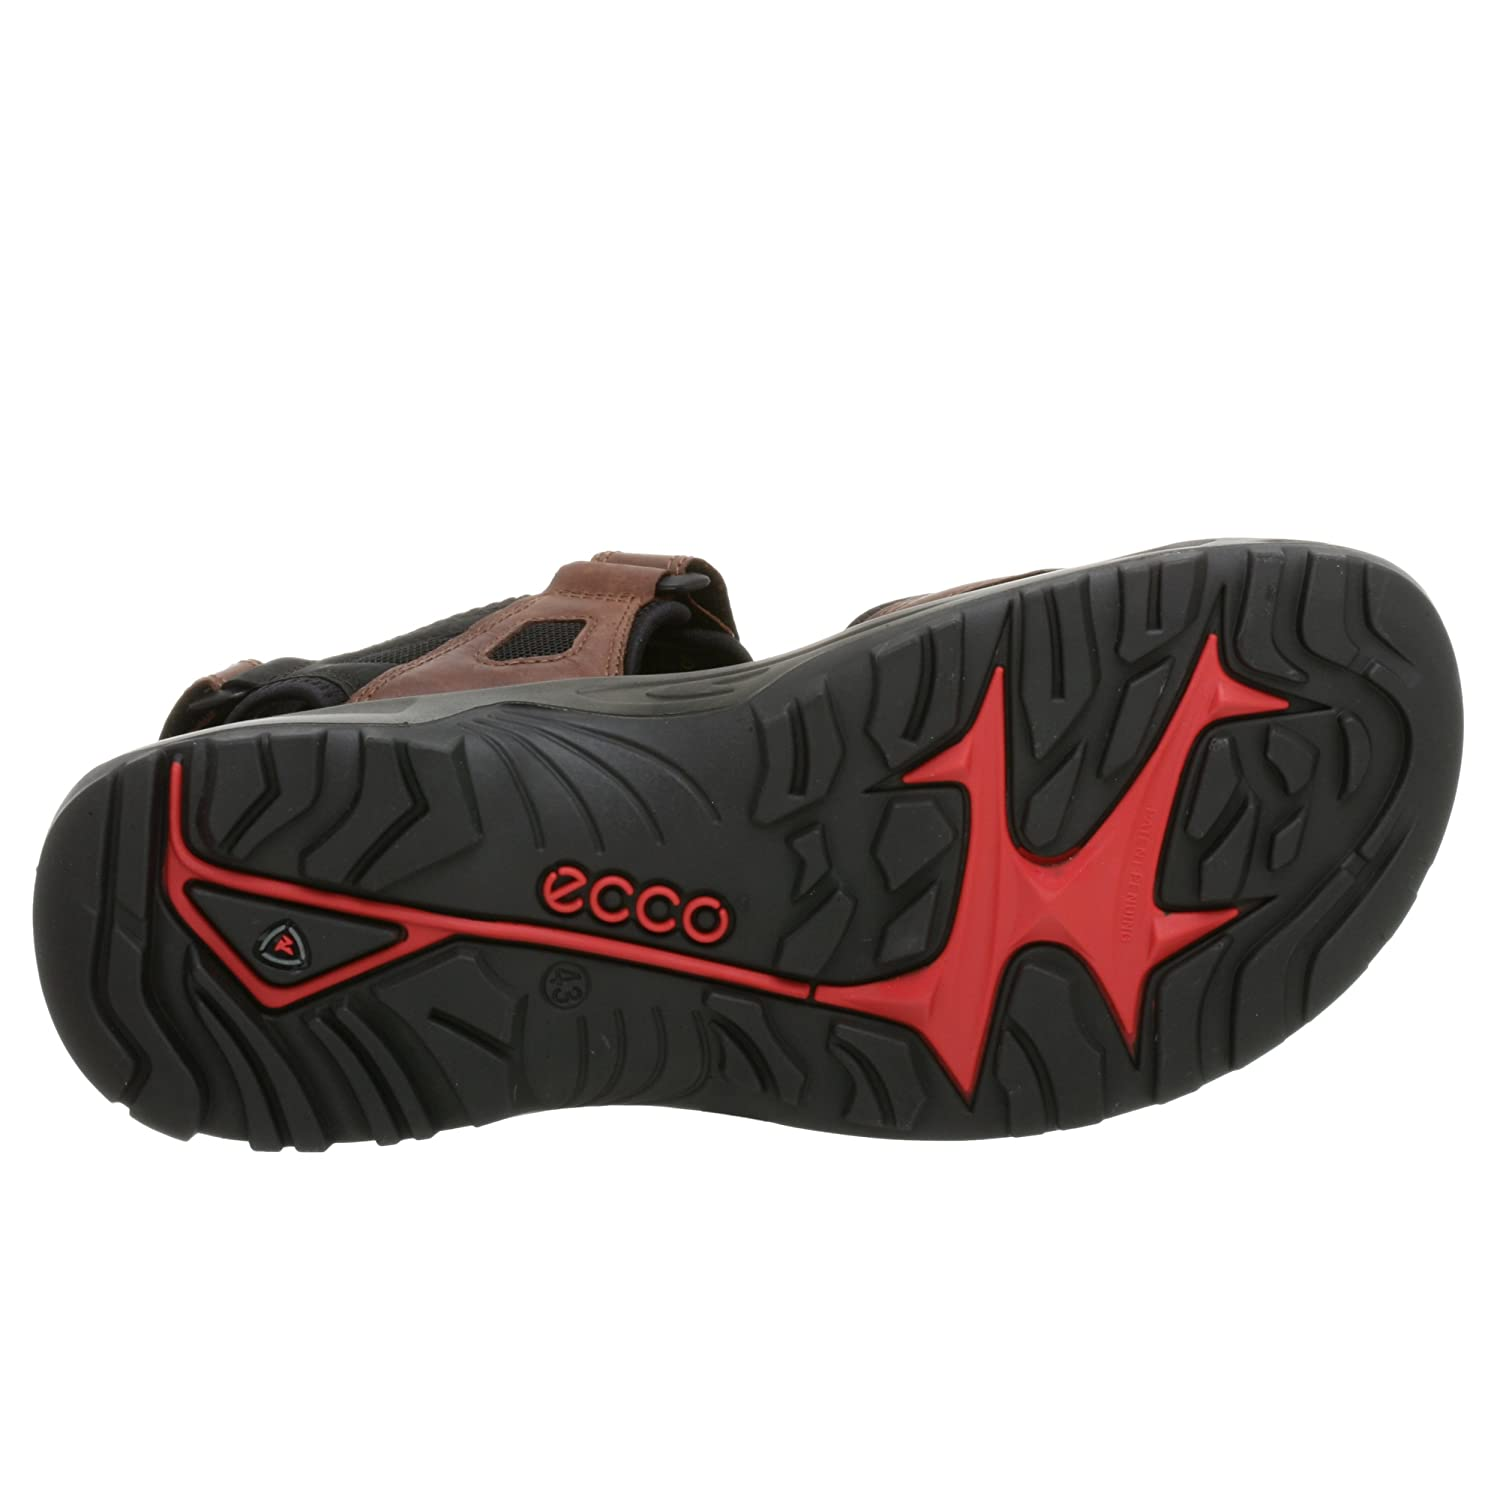 1753e7195ad Ecco Mens Yucatan Sandal  Amazon.ca  Shoes   Handbags